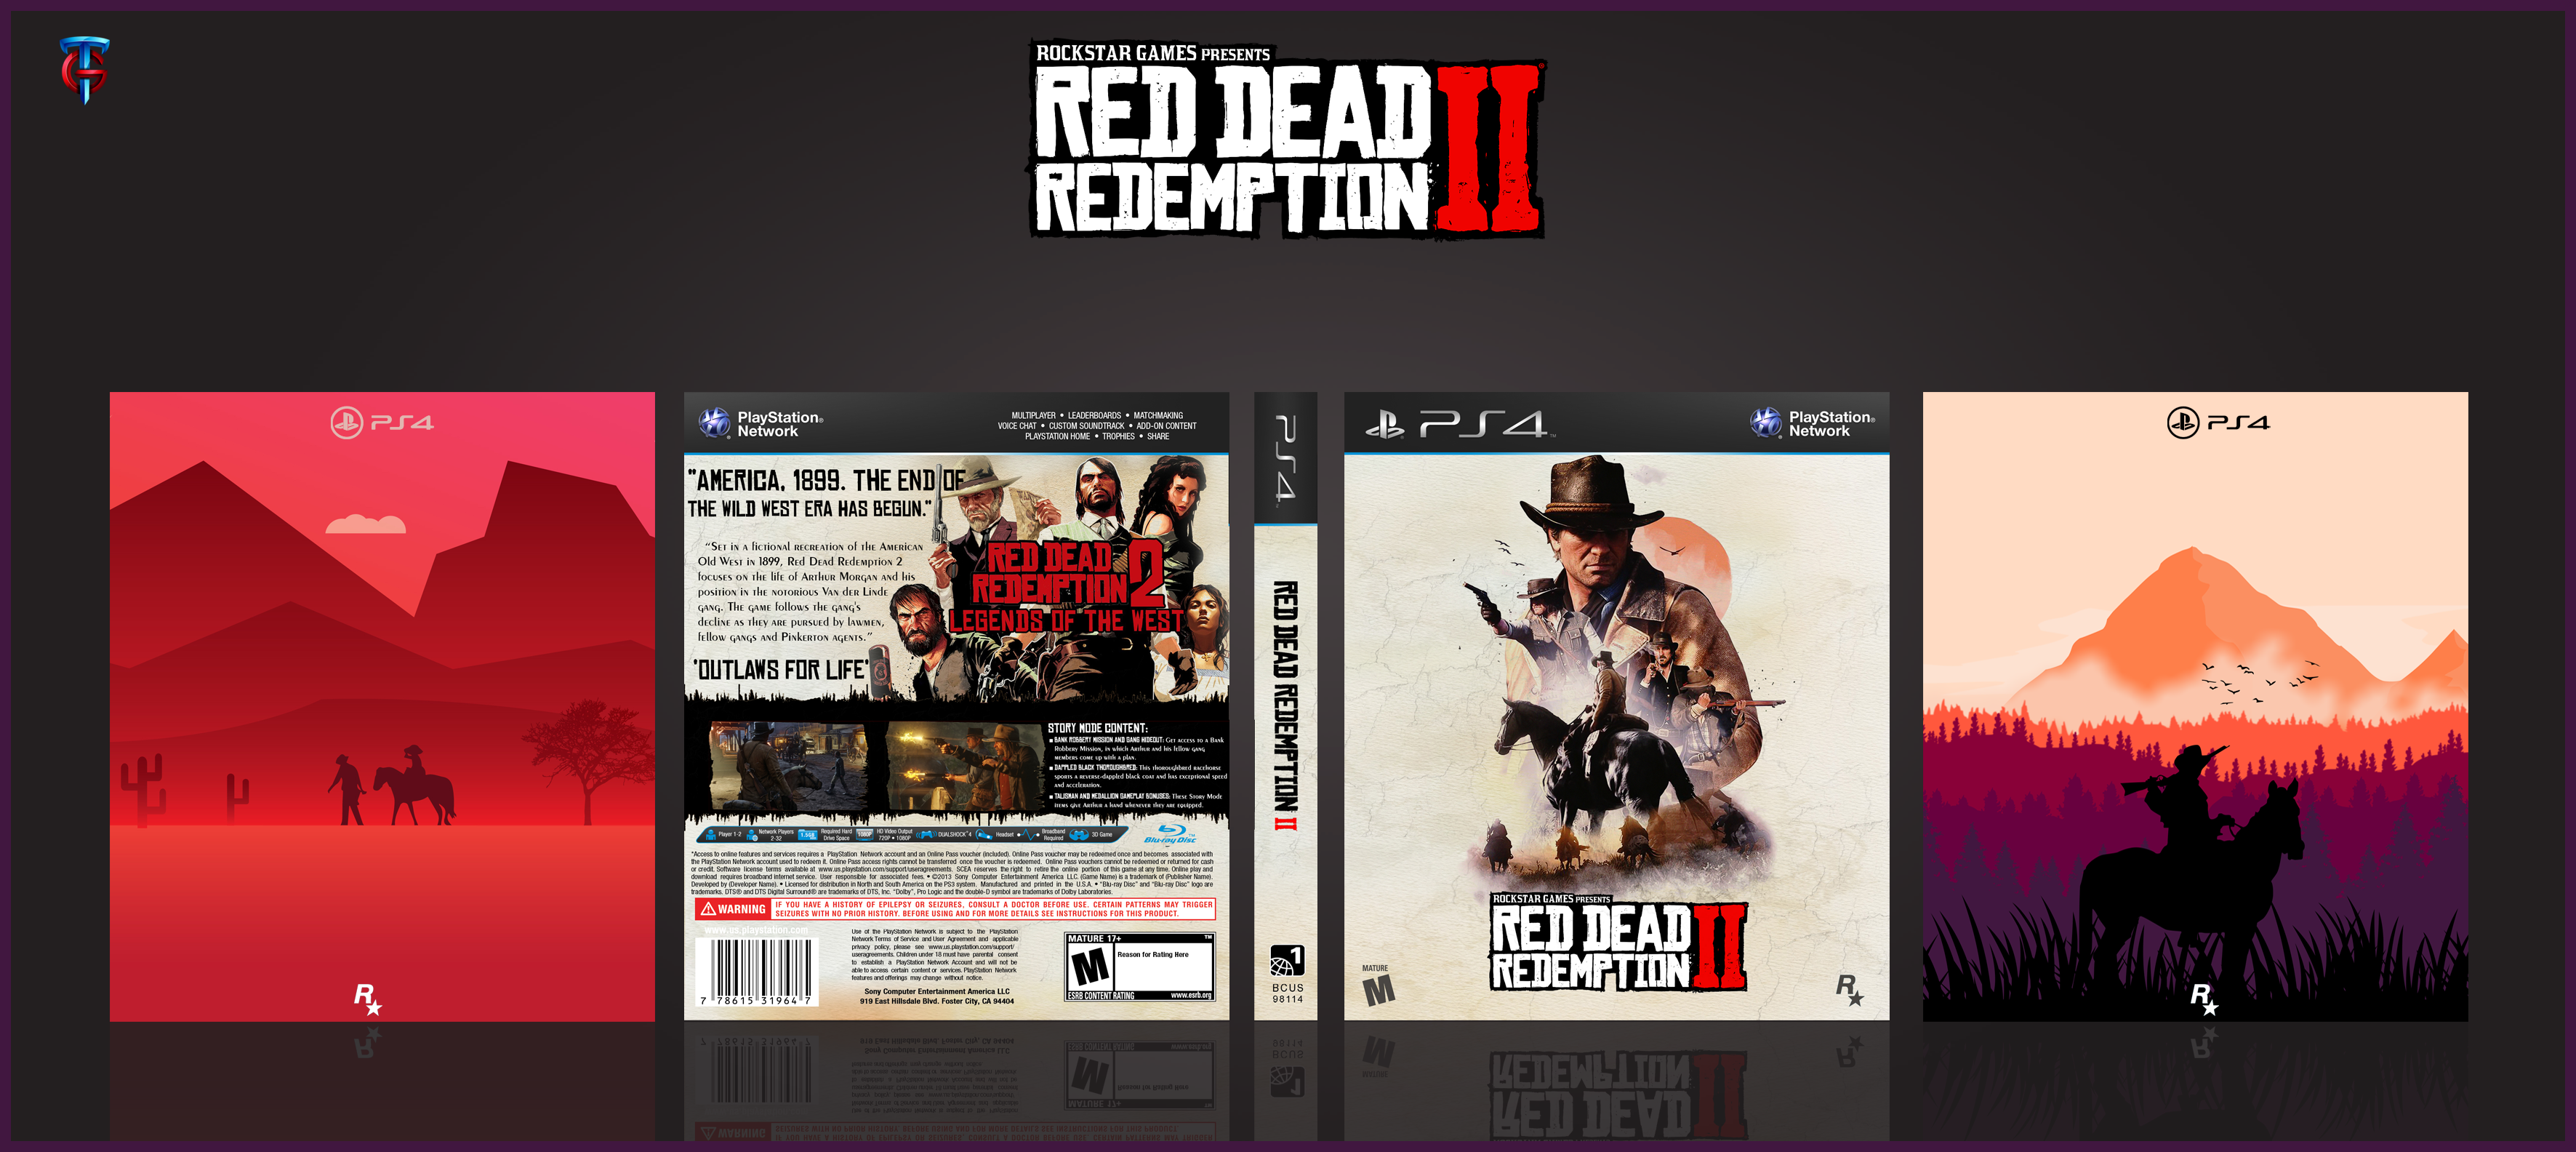 Red Dead Redemption II box cover